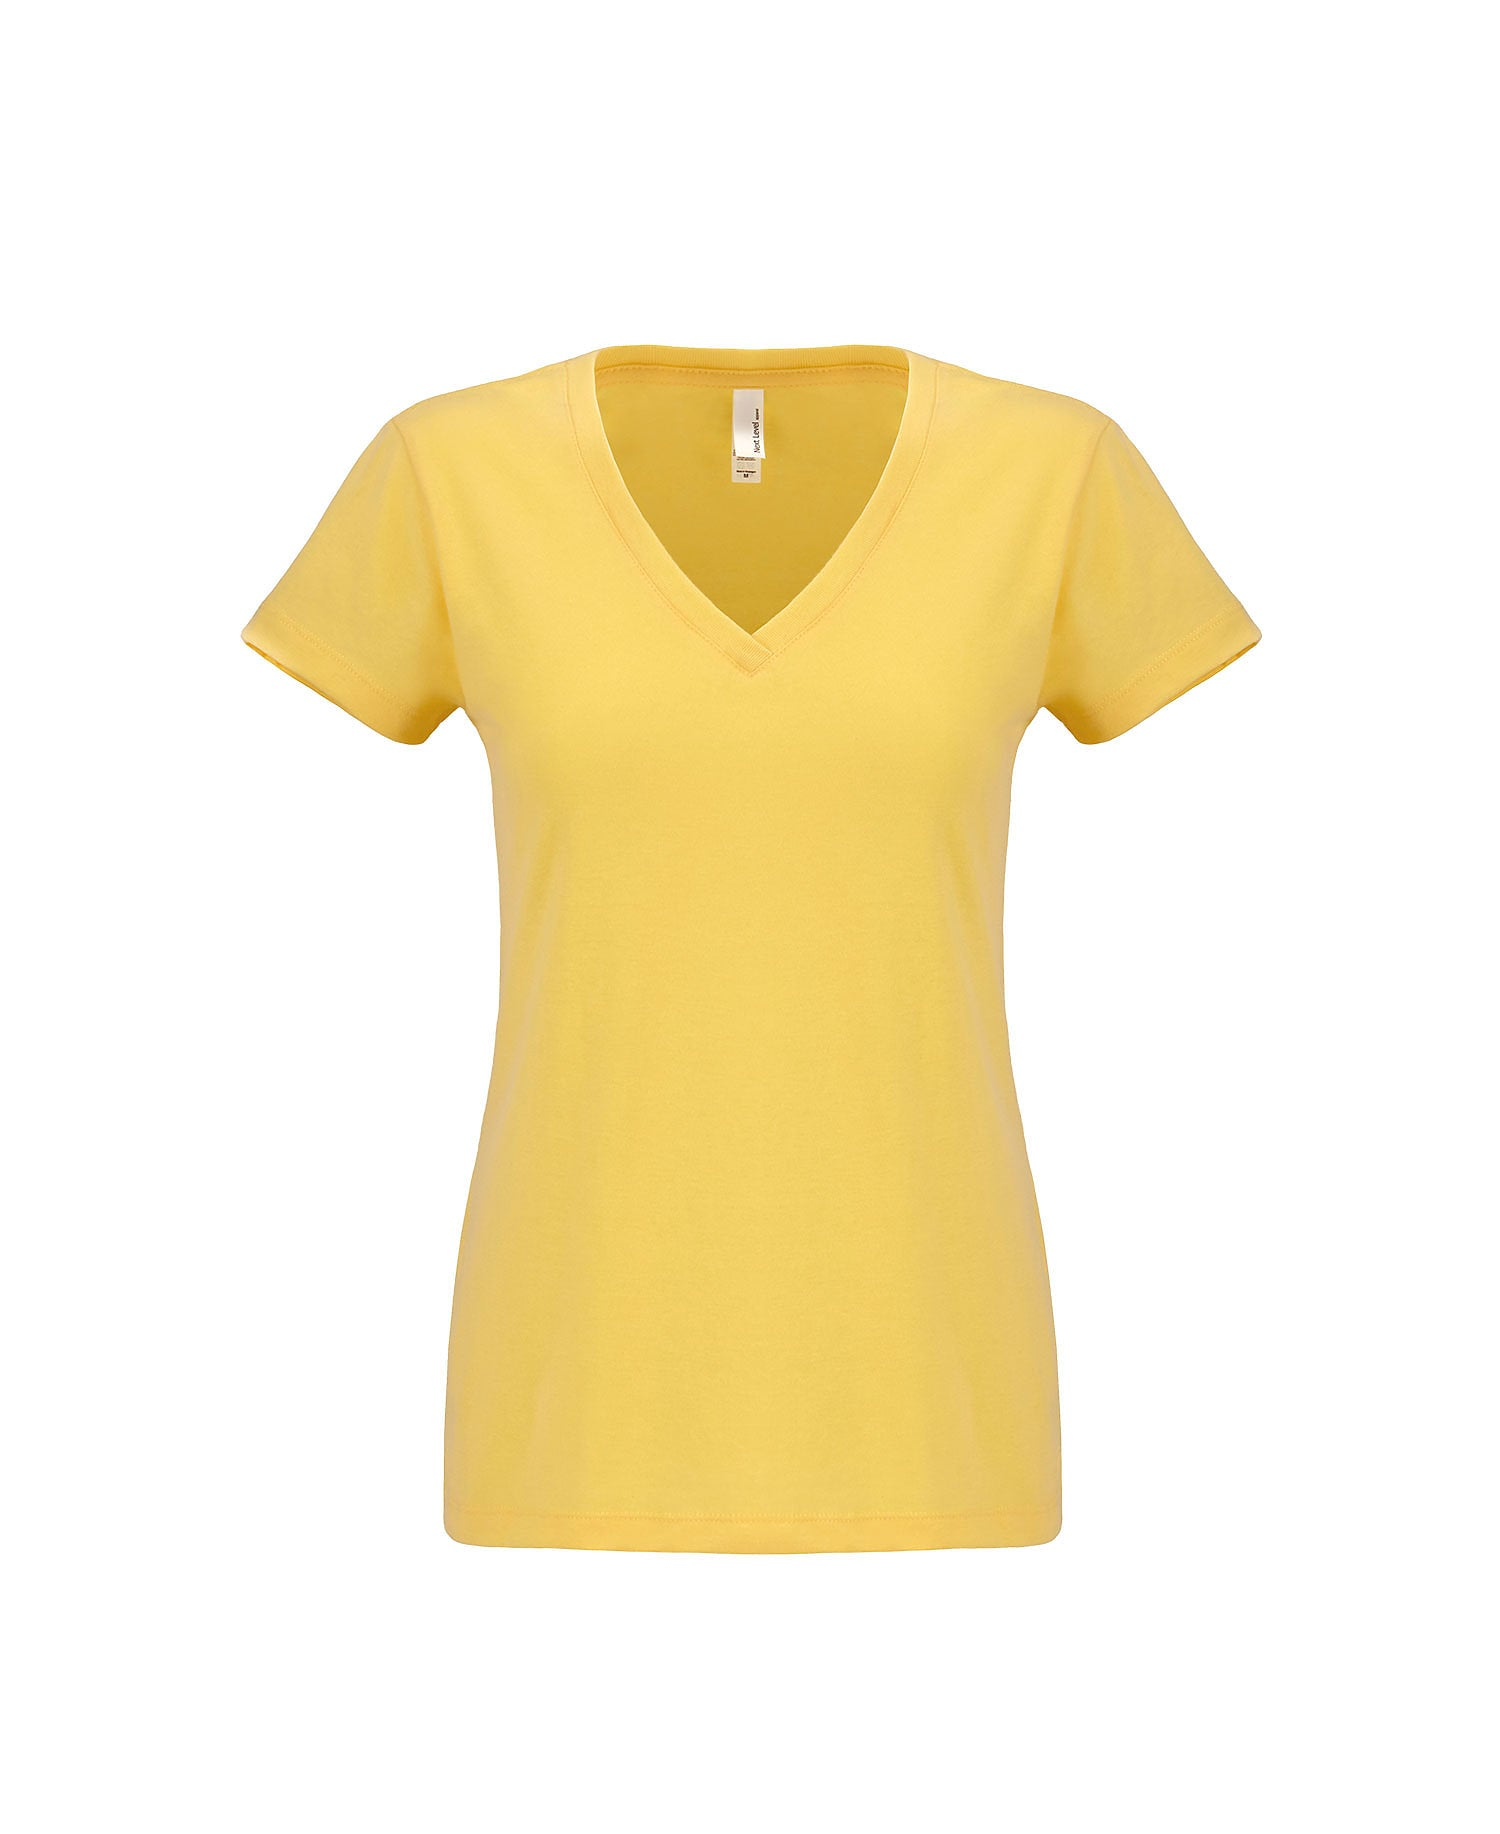 Next-Level-Women-039-s-Sueded-V-Neck-Tee-NL6480 thumbnail 12